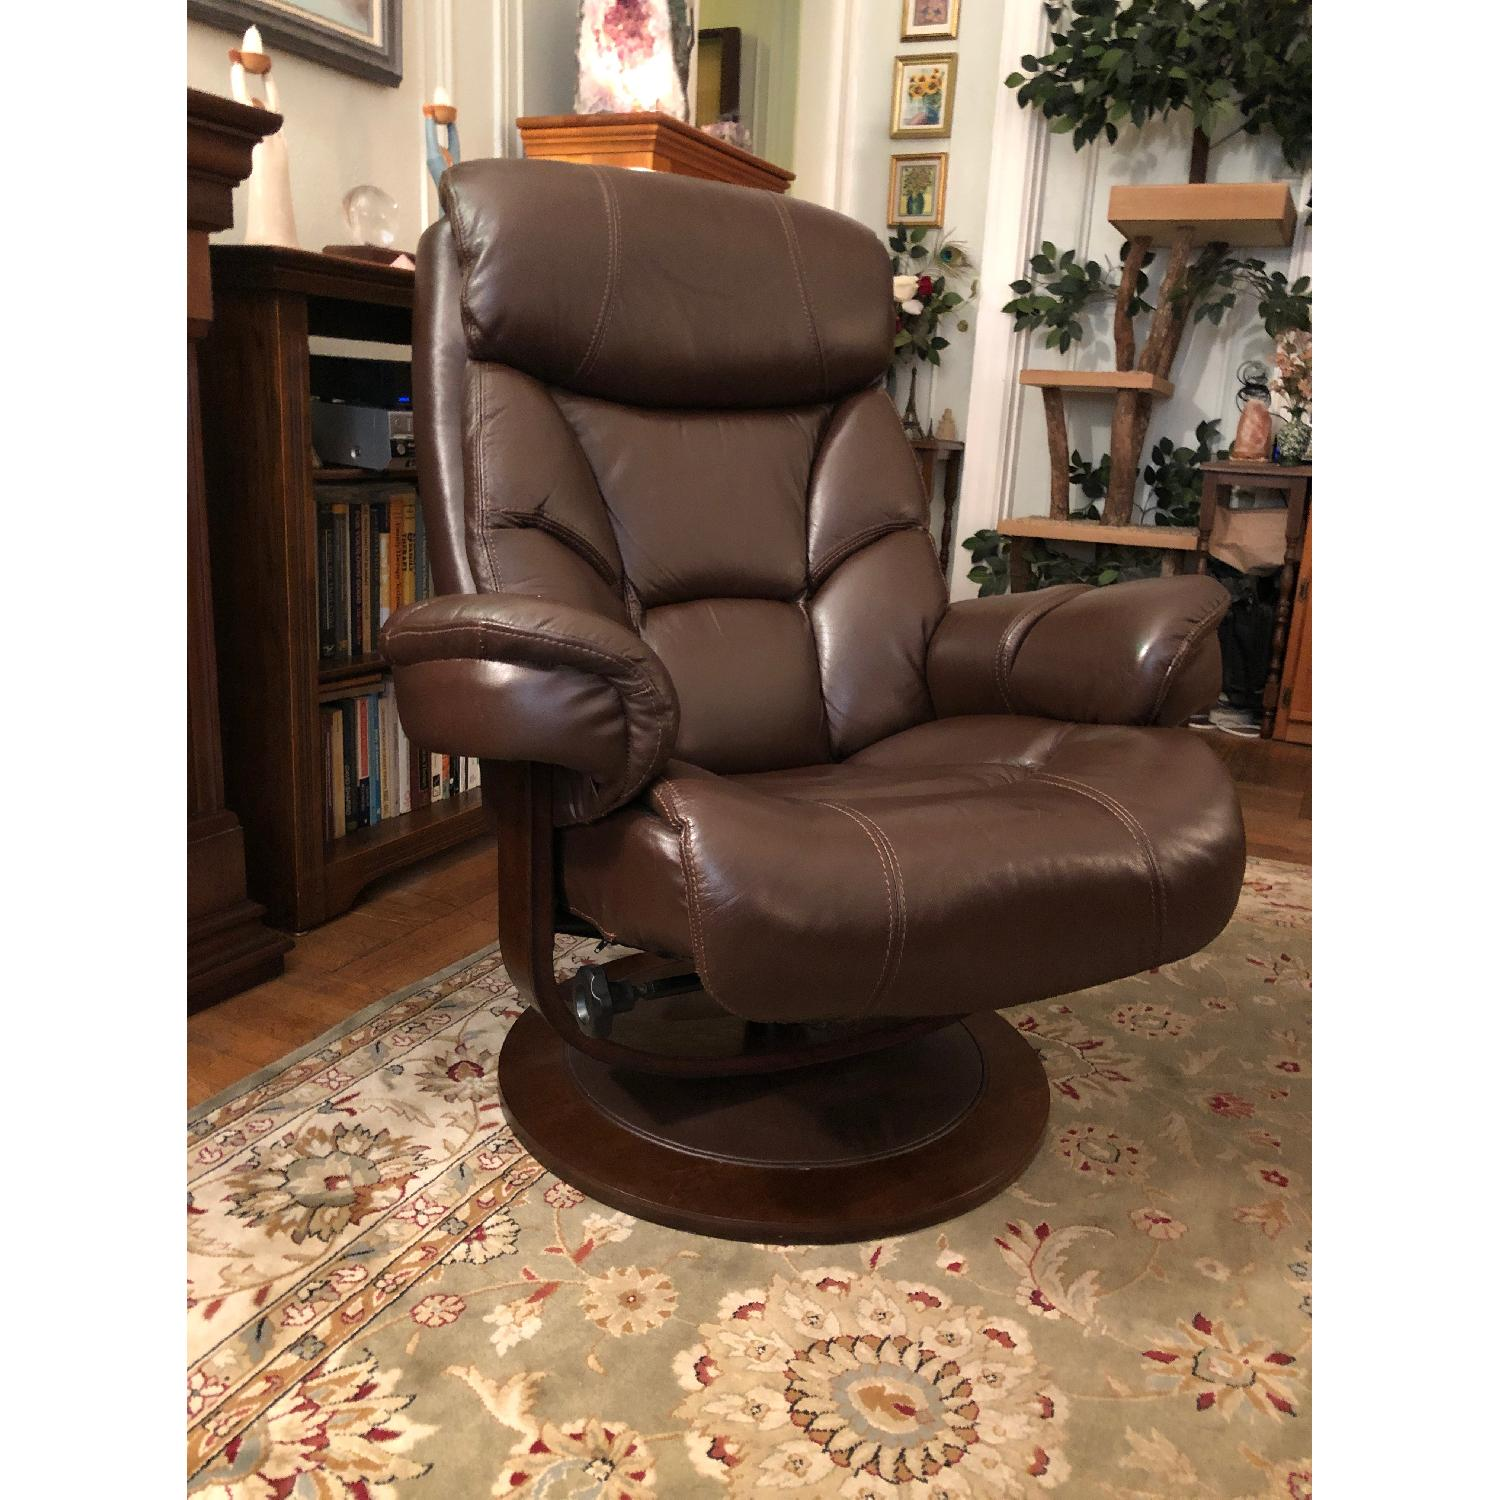 Macy's Leather Euro Chair & Ottoman - image-4